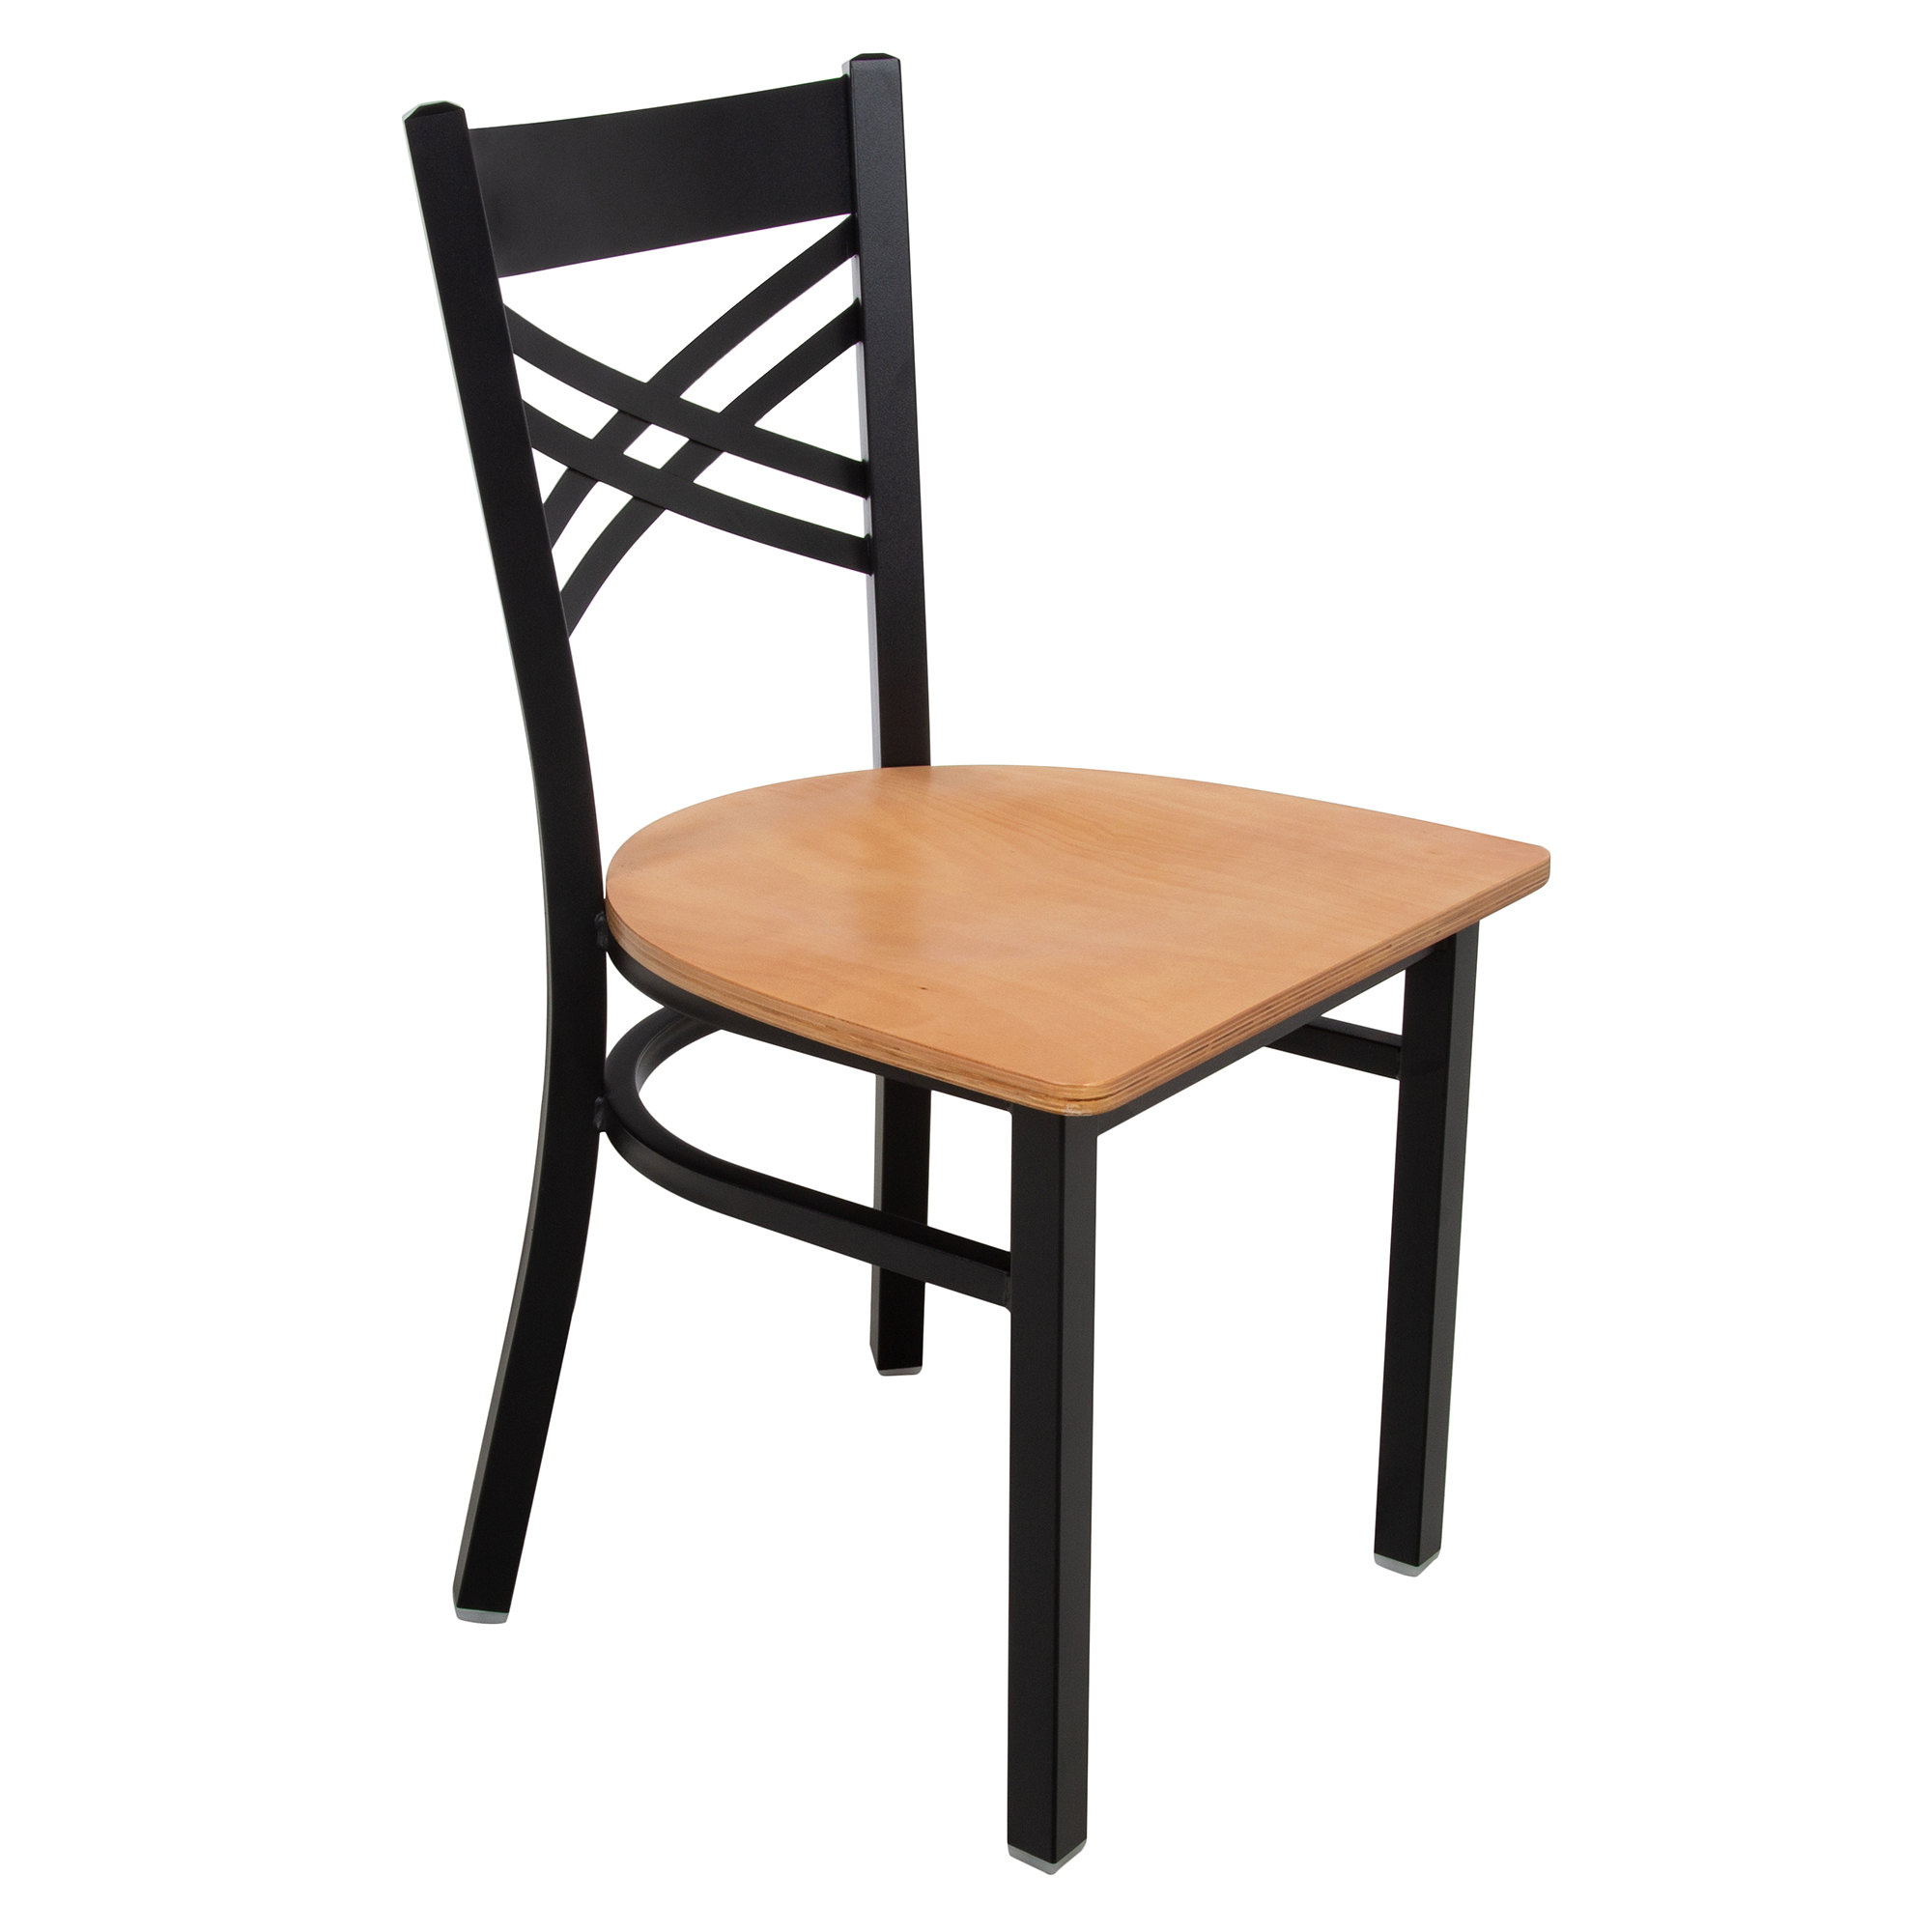 #156 - Black Cross Back Design Restaurant Metal Chair with Natural Wood Seat